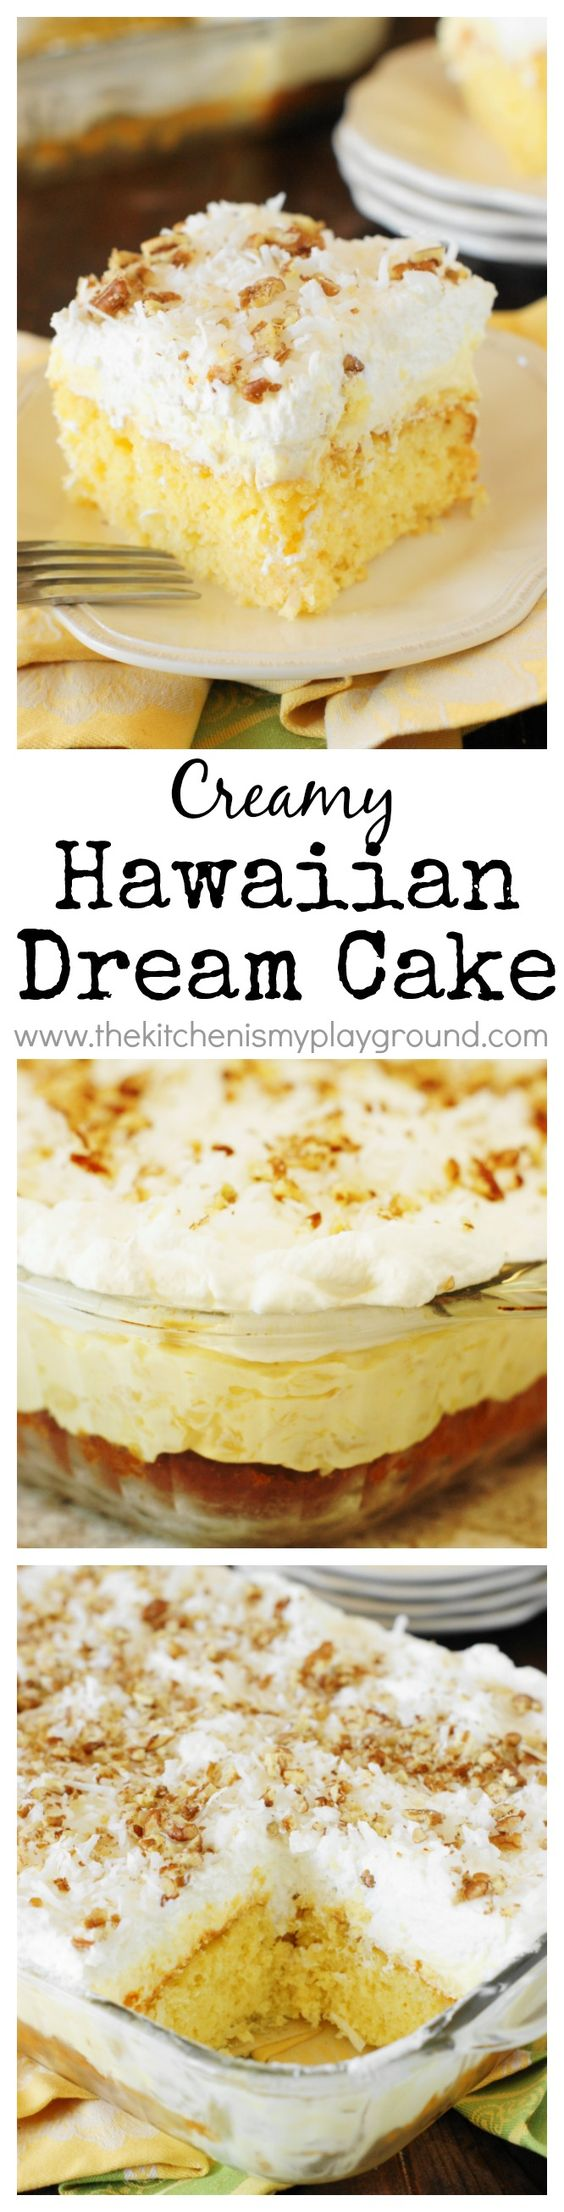 HAWAIIAN DREAM CAKE